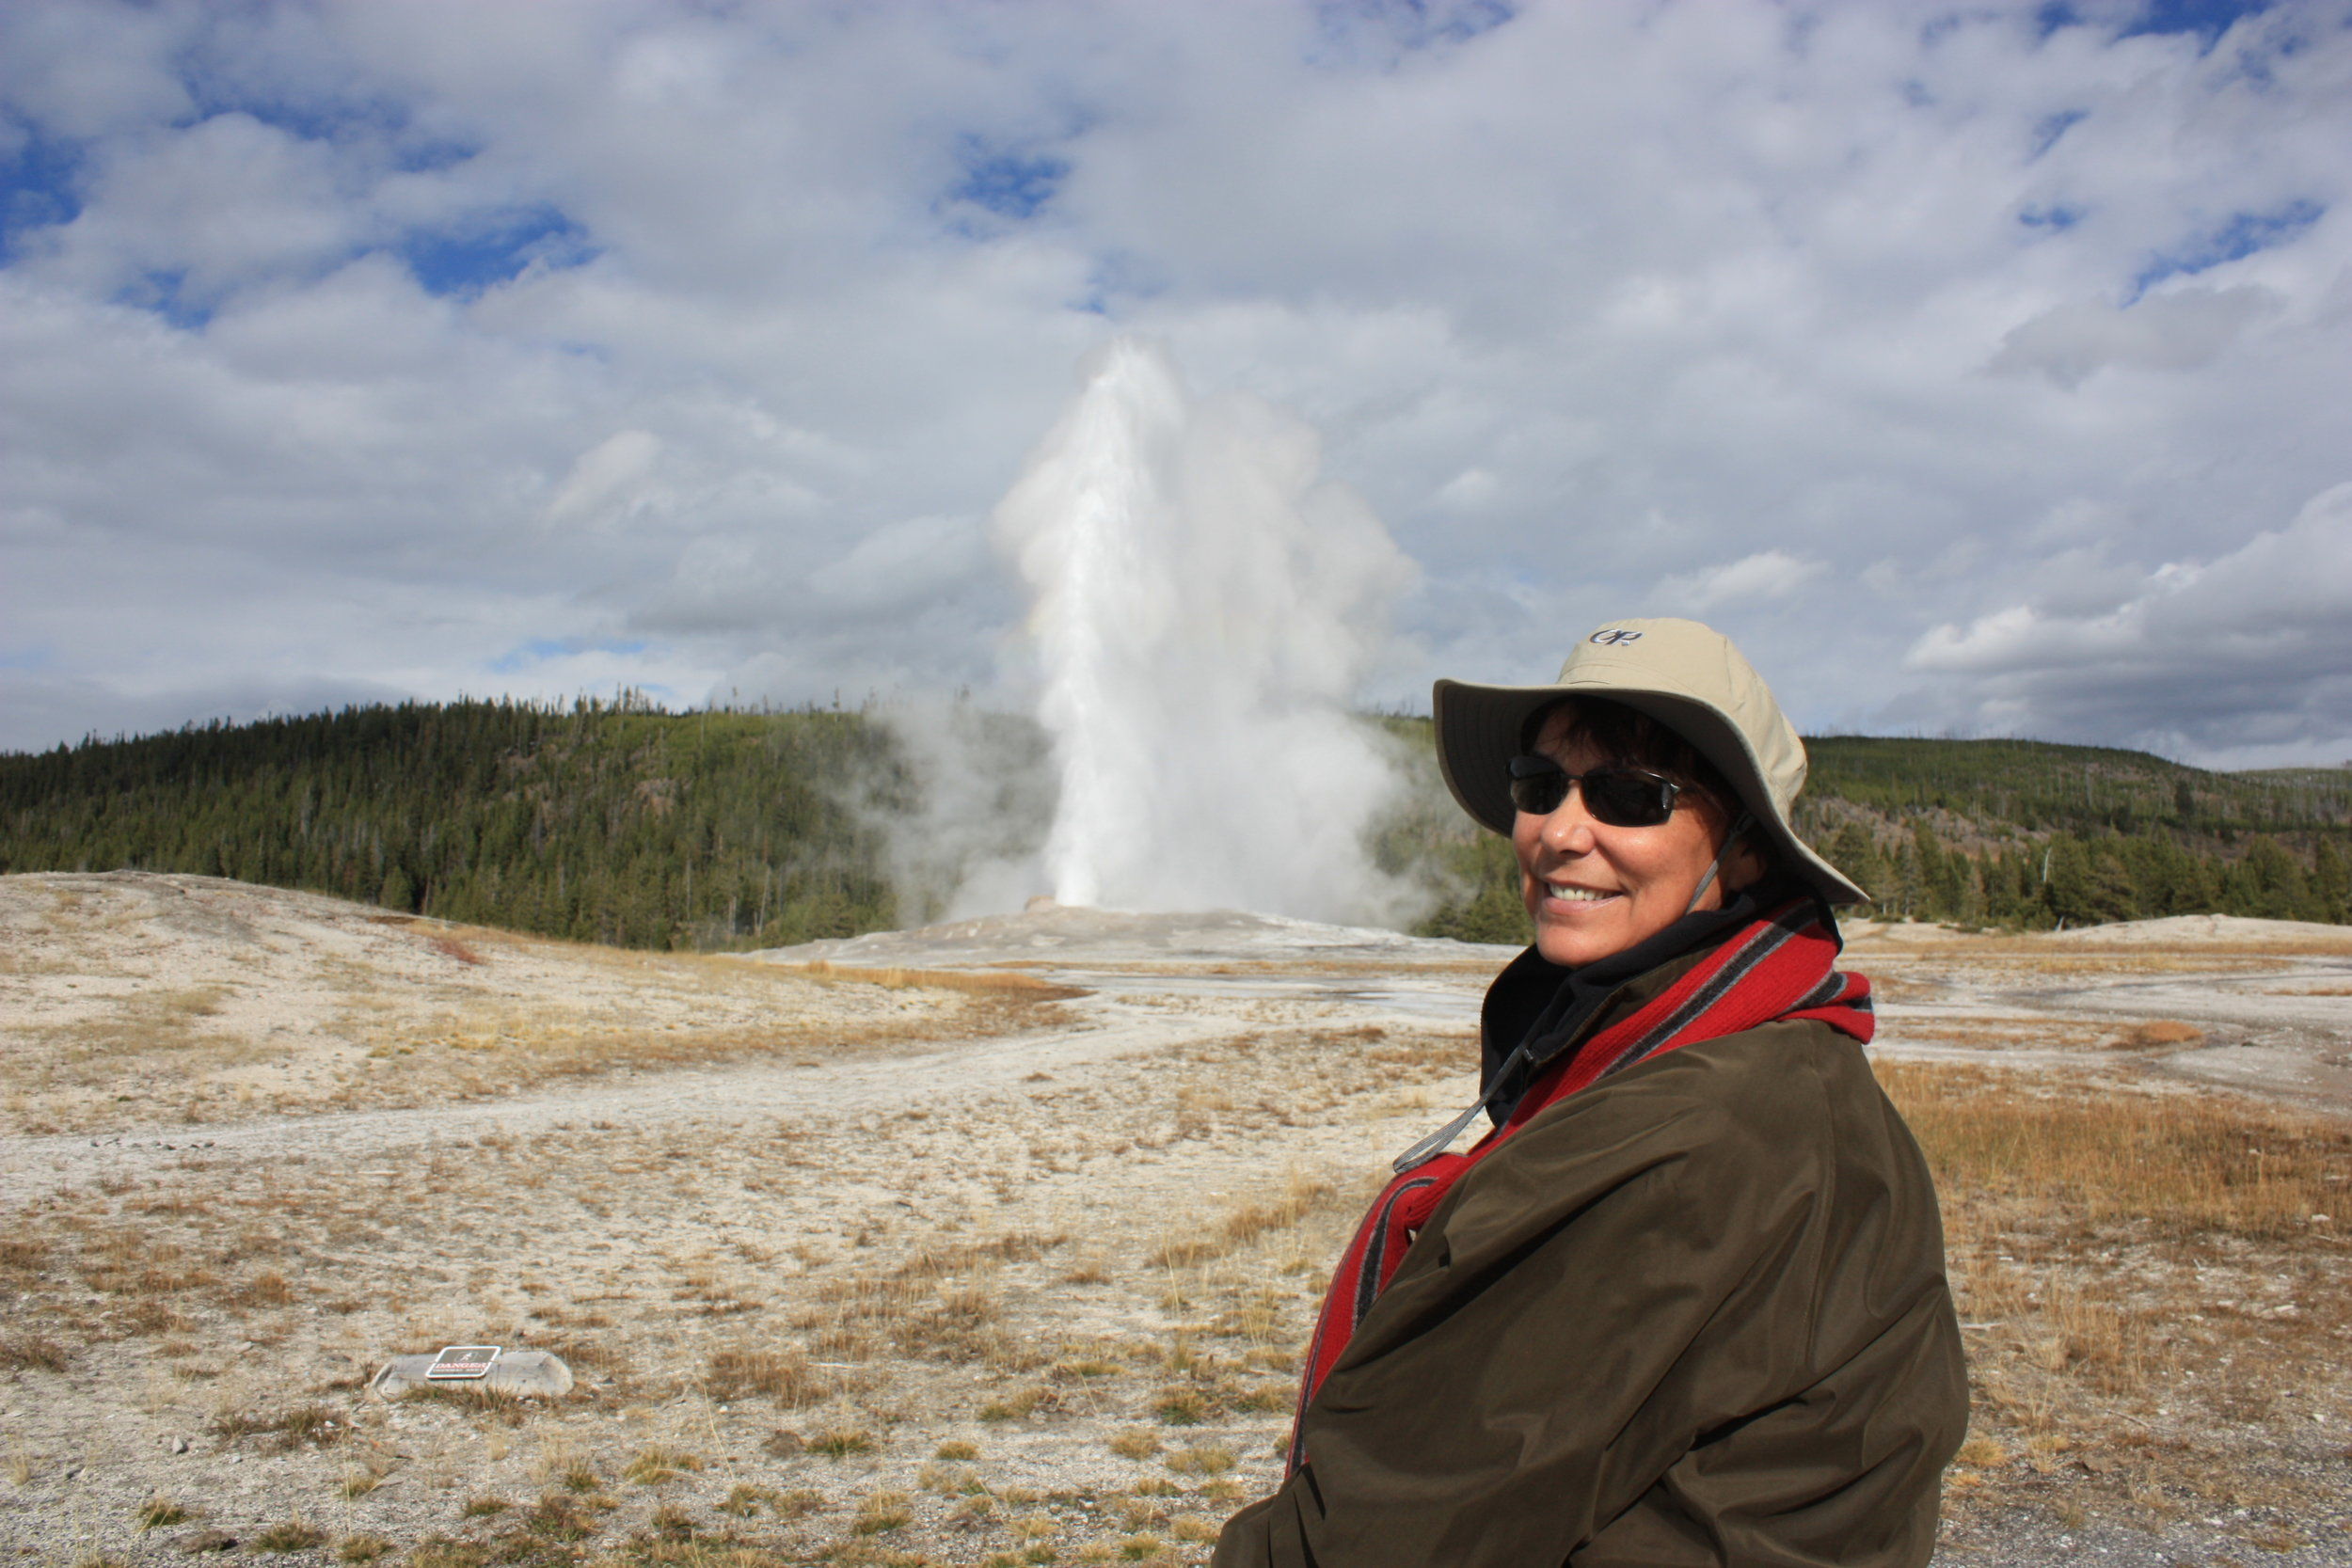 Yellowstone marks the beginning of our trek to all of the country's major National Parks. This incredible landscape was the country's first National Park and it was the  first  of the 59 major parks we would visit over the next 9 years. Terry enjoying the view of Old Faithful erupting in the background!